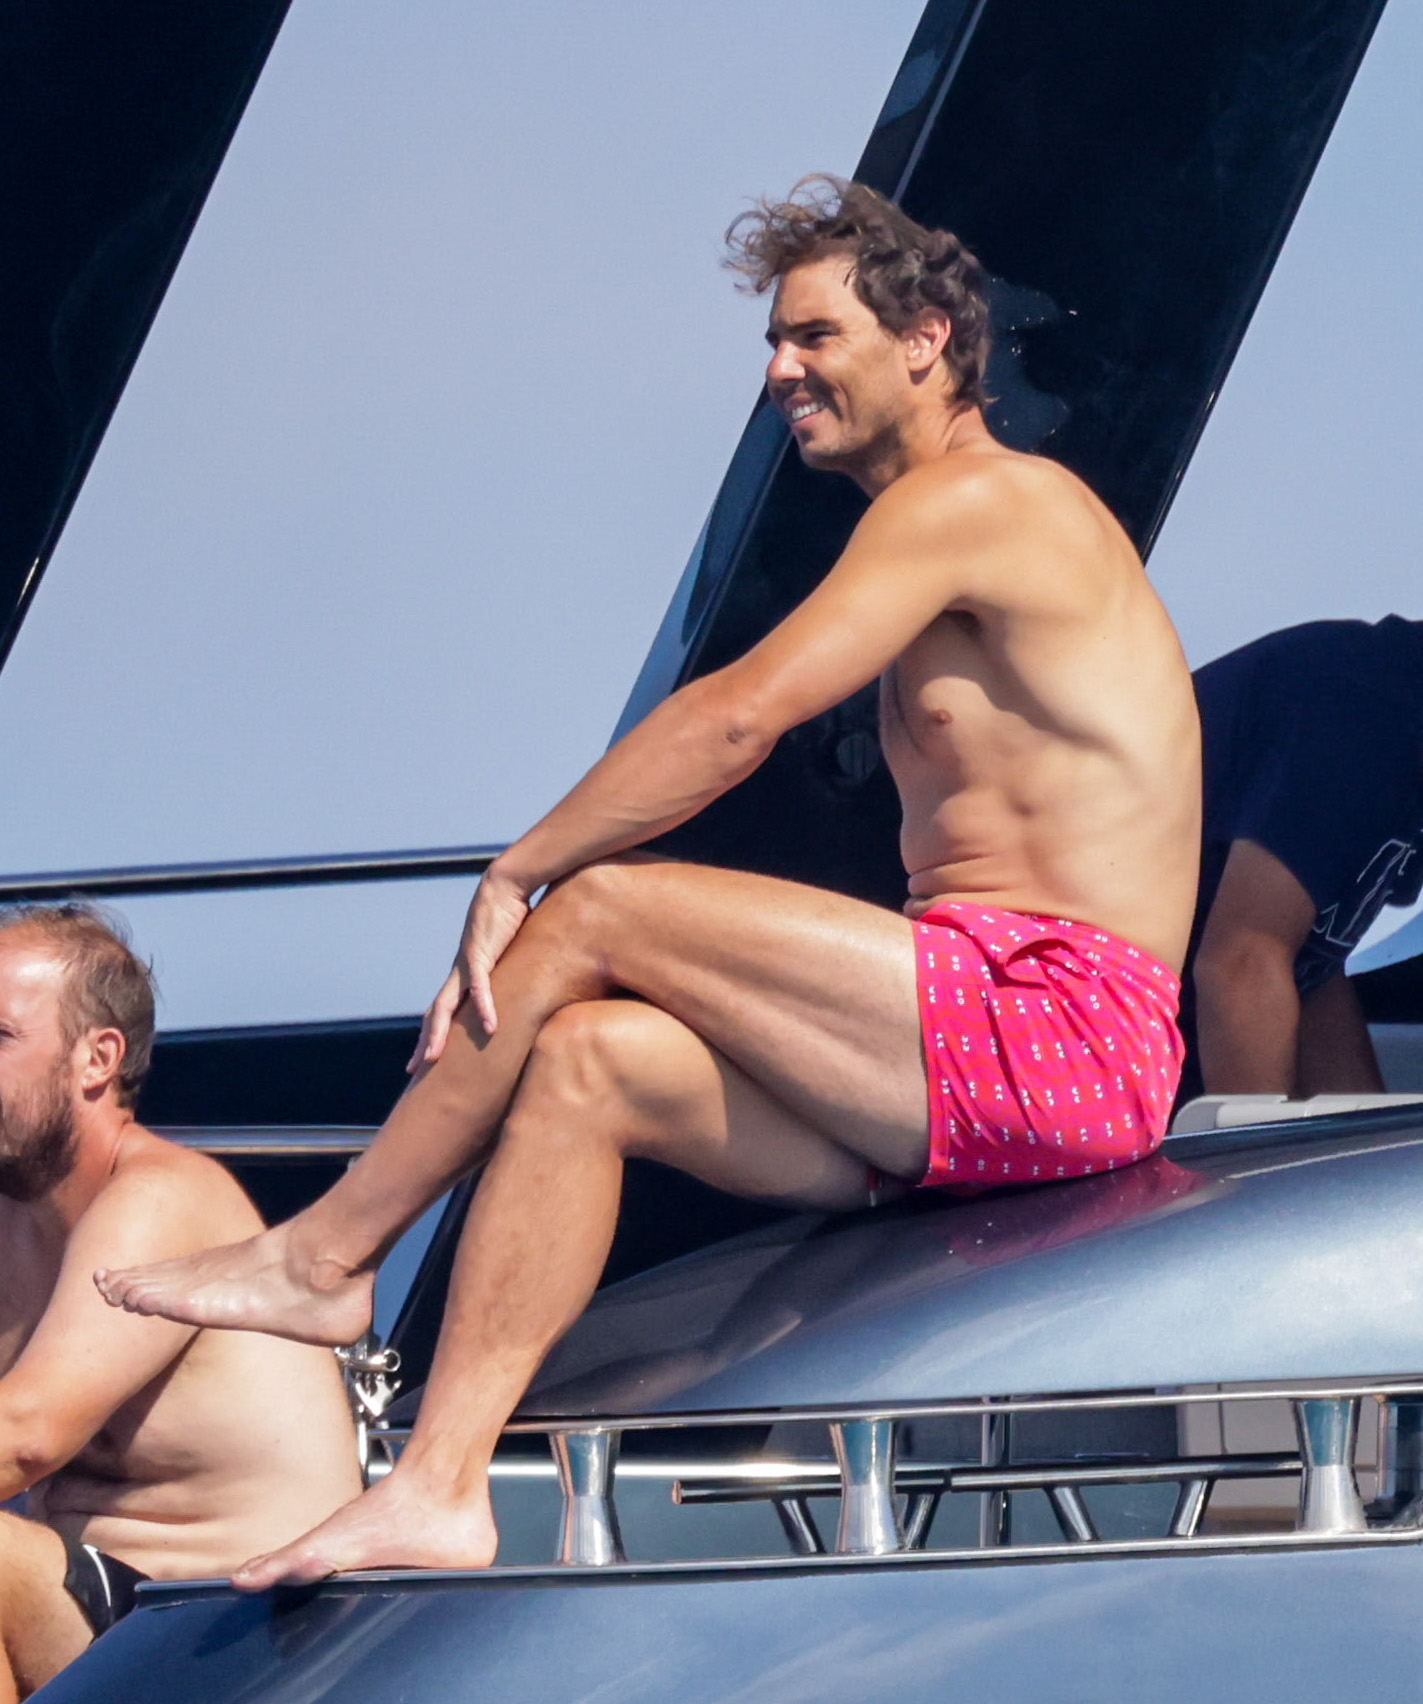 Shirtless Rafael Nadal Relaxes On His Yacht In Ibiza After Taking A Break From Tennis